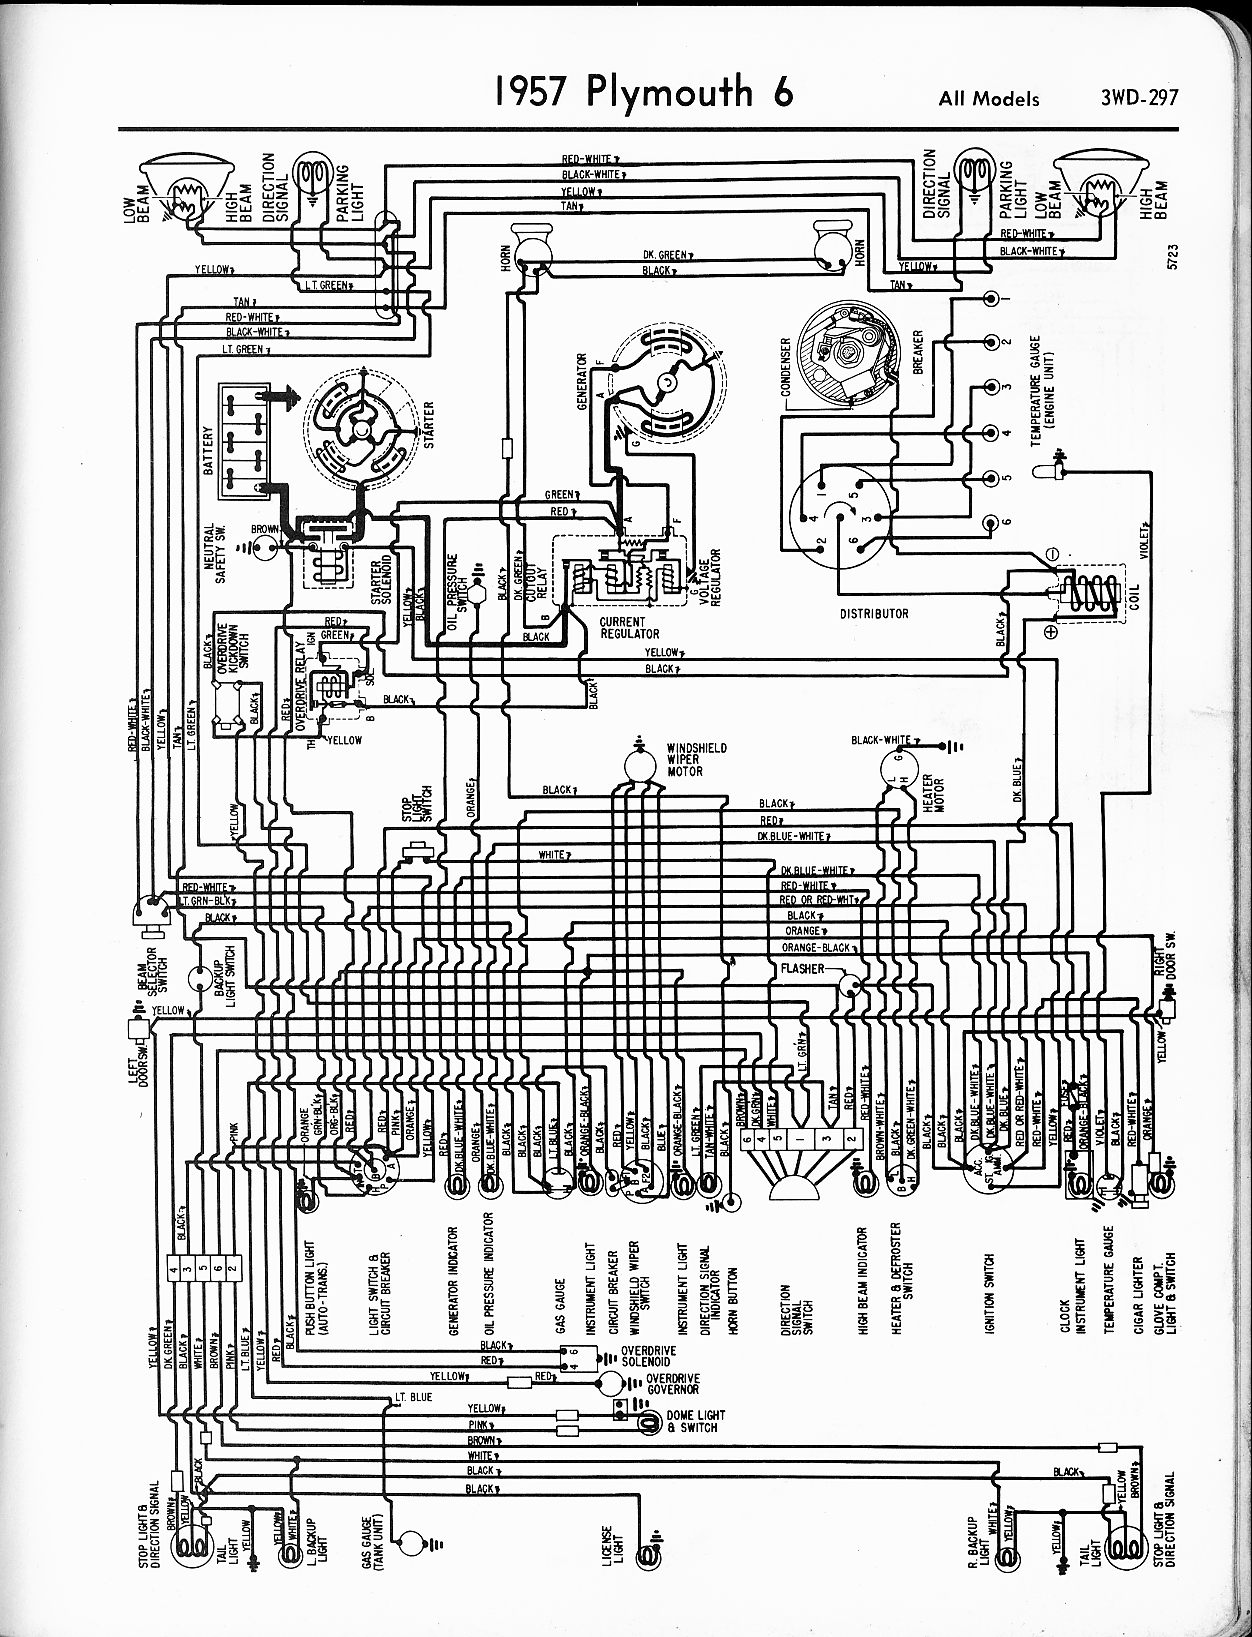 1969 Plymouth Wiring Schematic - Circuit Diagram Symbols •